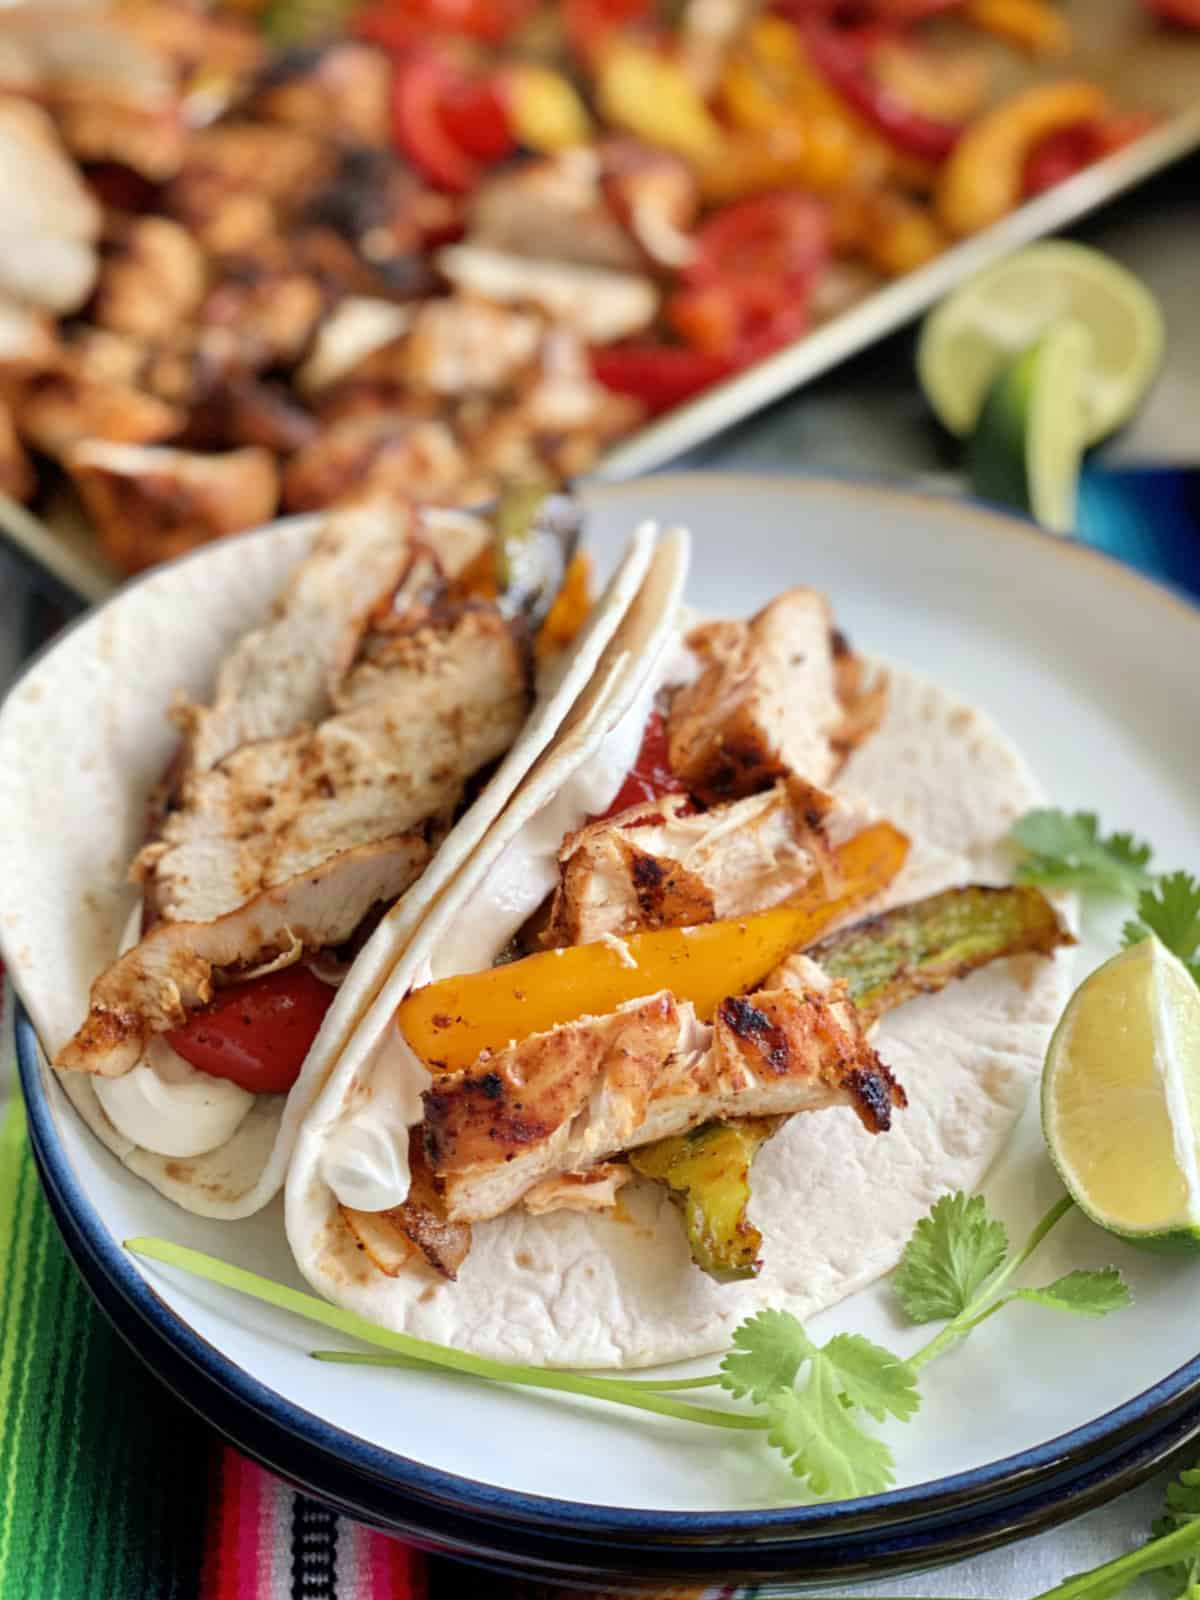 Up close view of two folded tortillas that have grilled chicken, peppers, and sour cream.